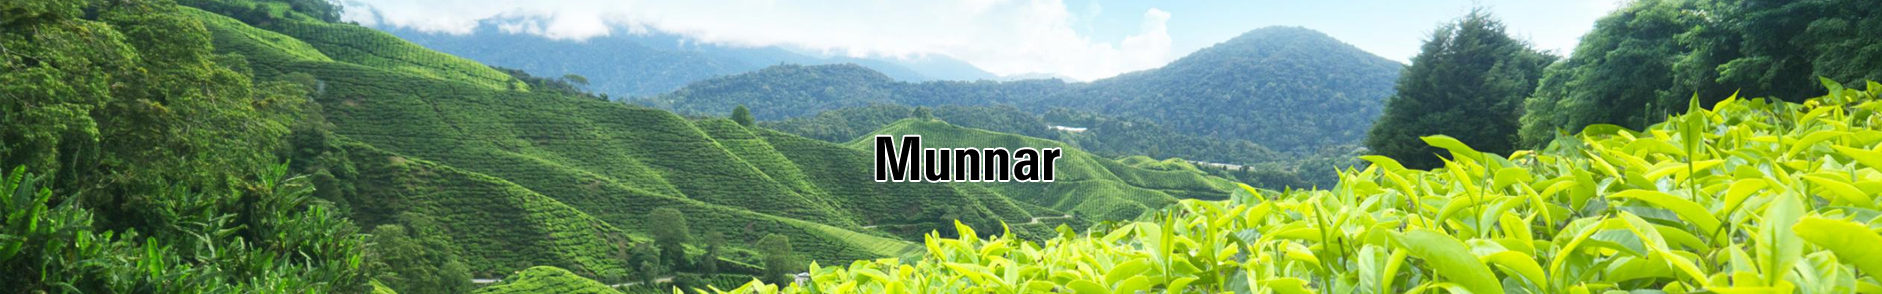 Munnar Hill Station Holiday Packages